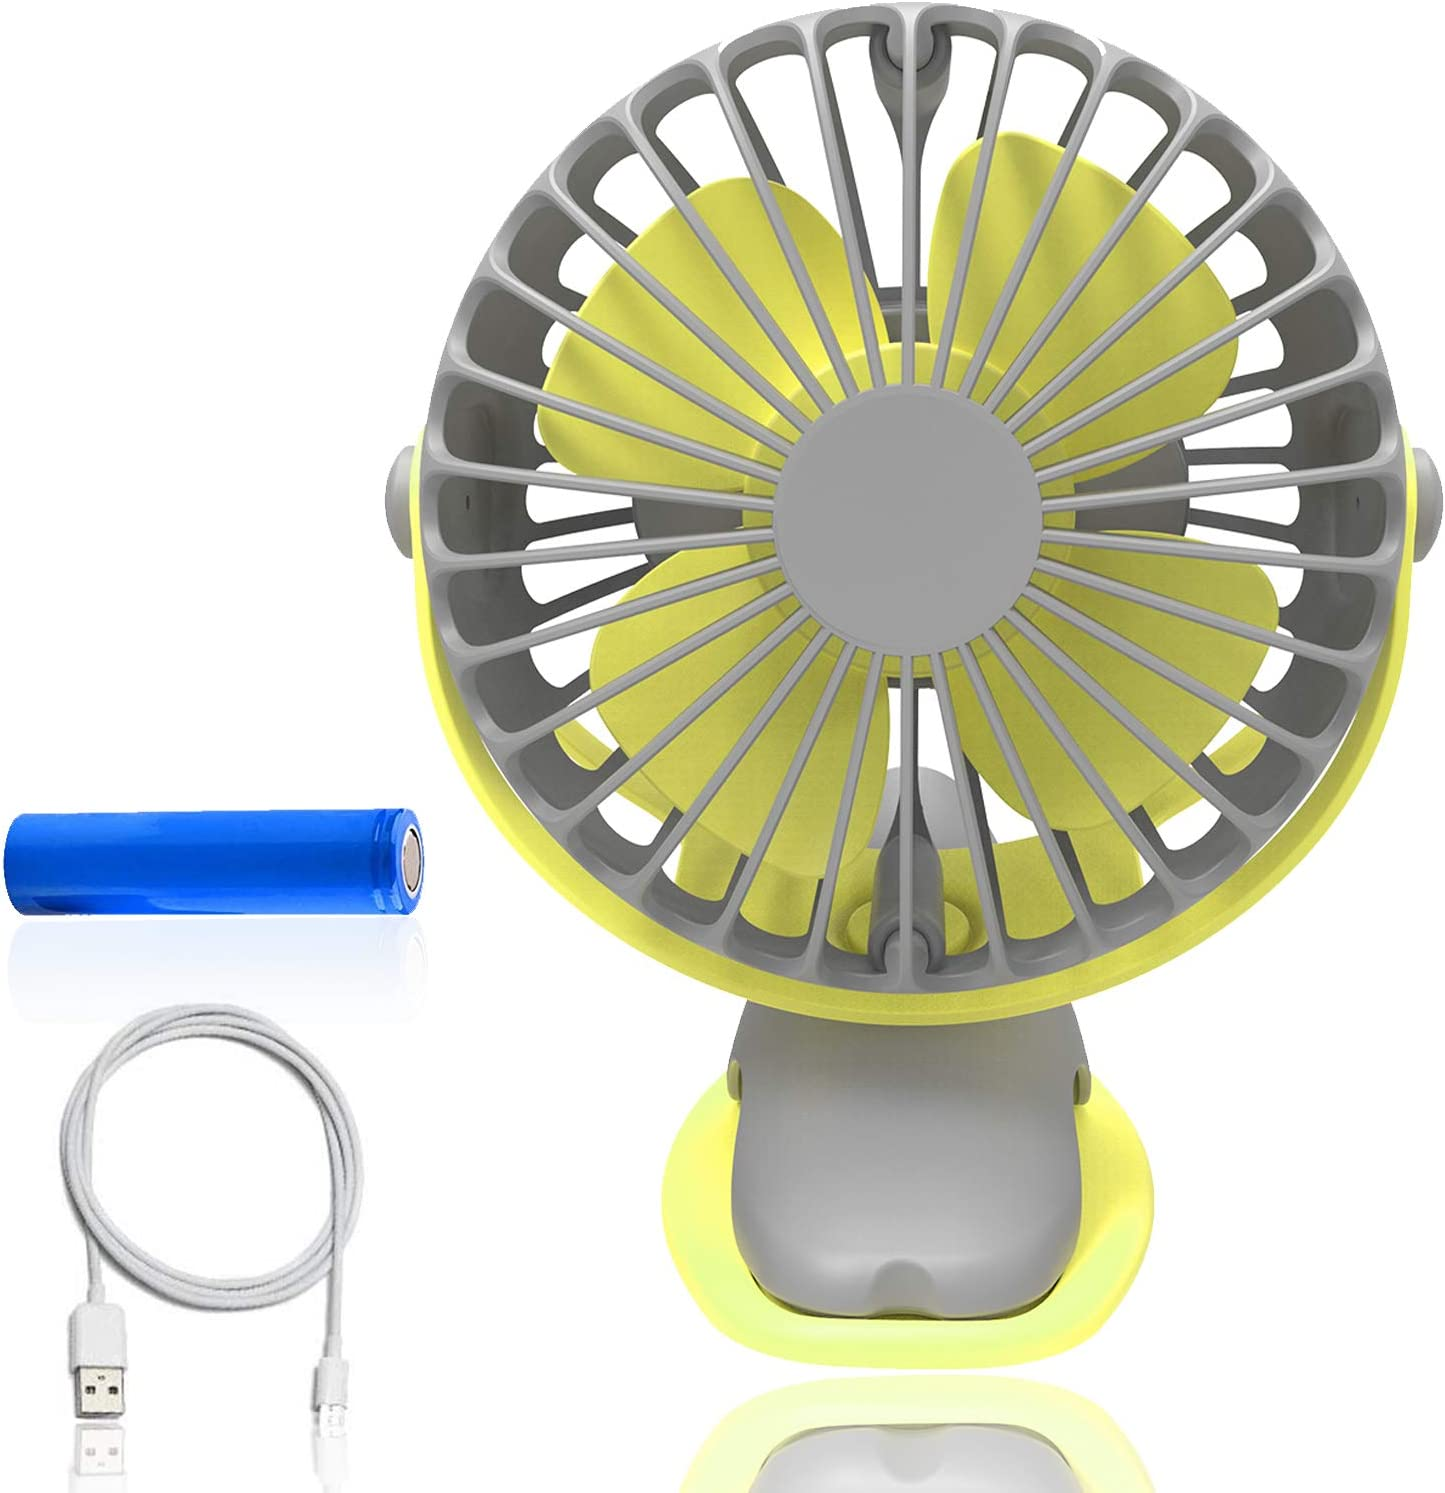 upHere Desk Fan, Rechargeable Battery Operated Clip on Fan with 4 Mode,360 Degree Rotation Portable USB Fan, Strong Wind Personal Fan for Stroller Car, Home Office Table,Camping – Yellow and Gray